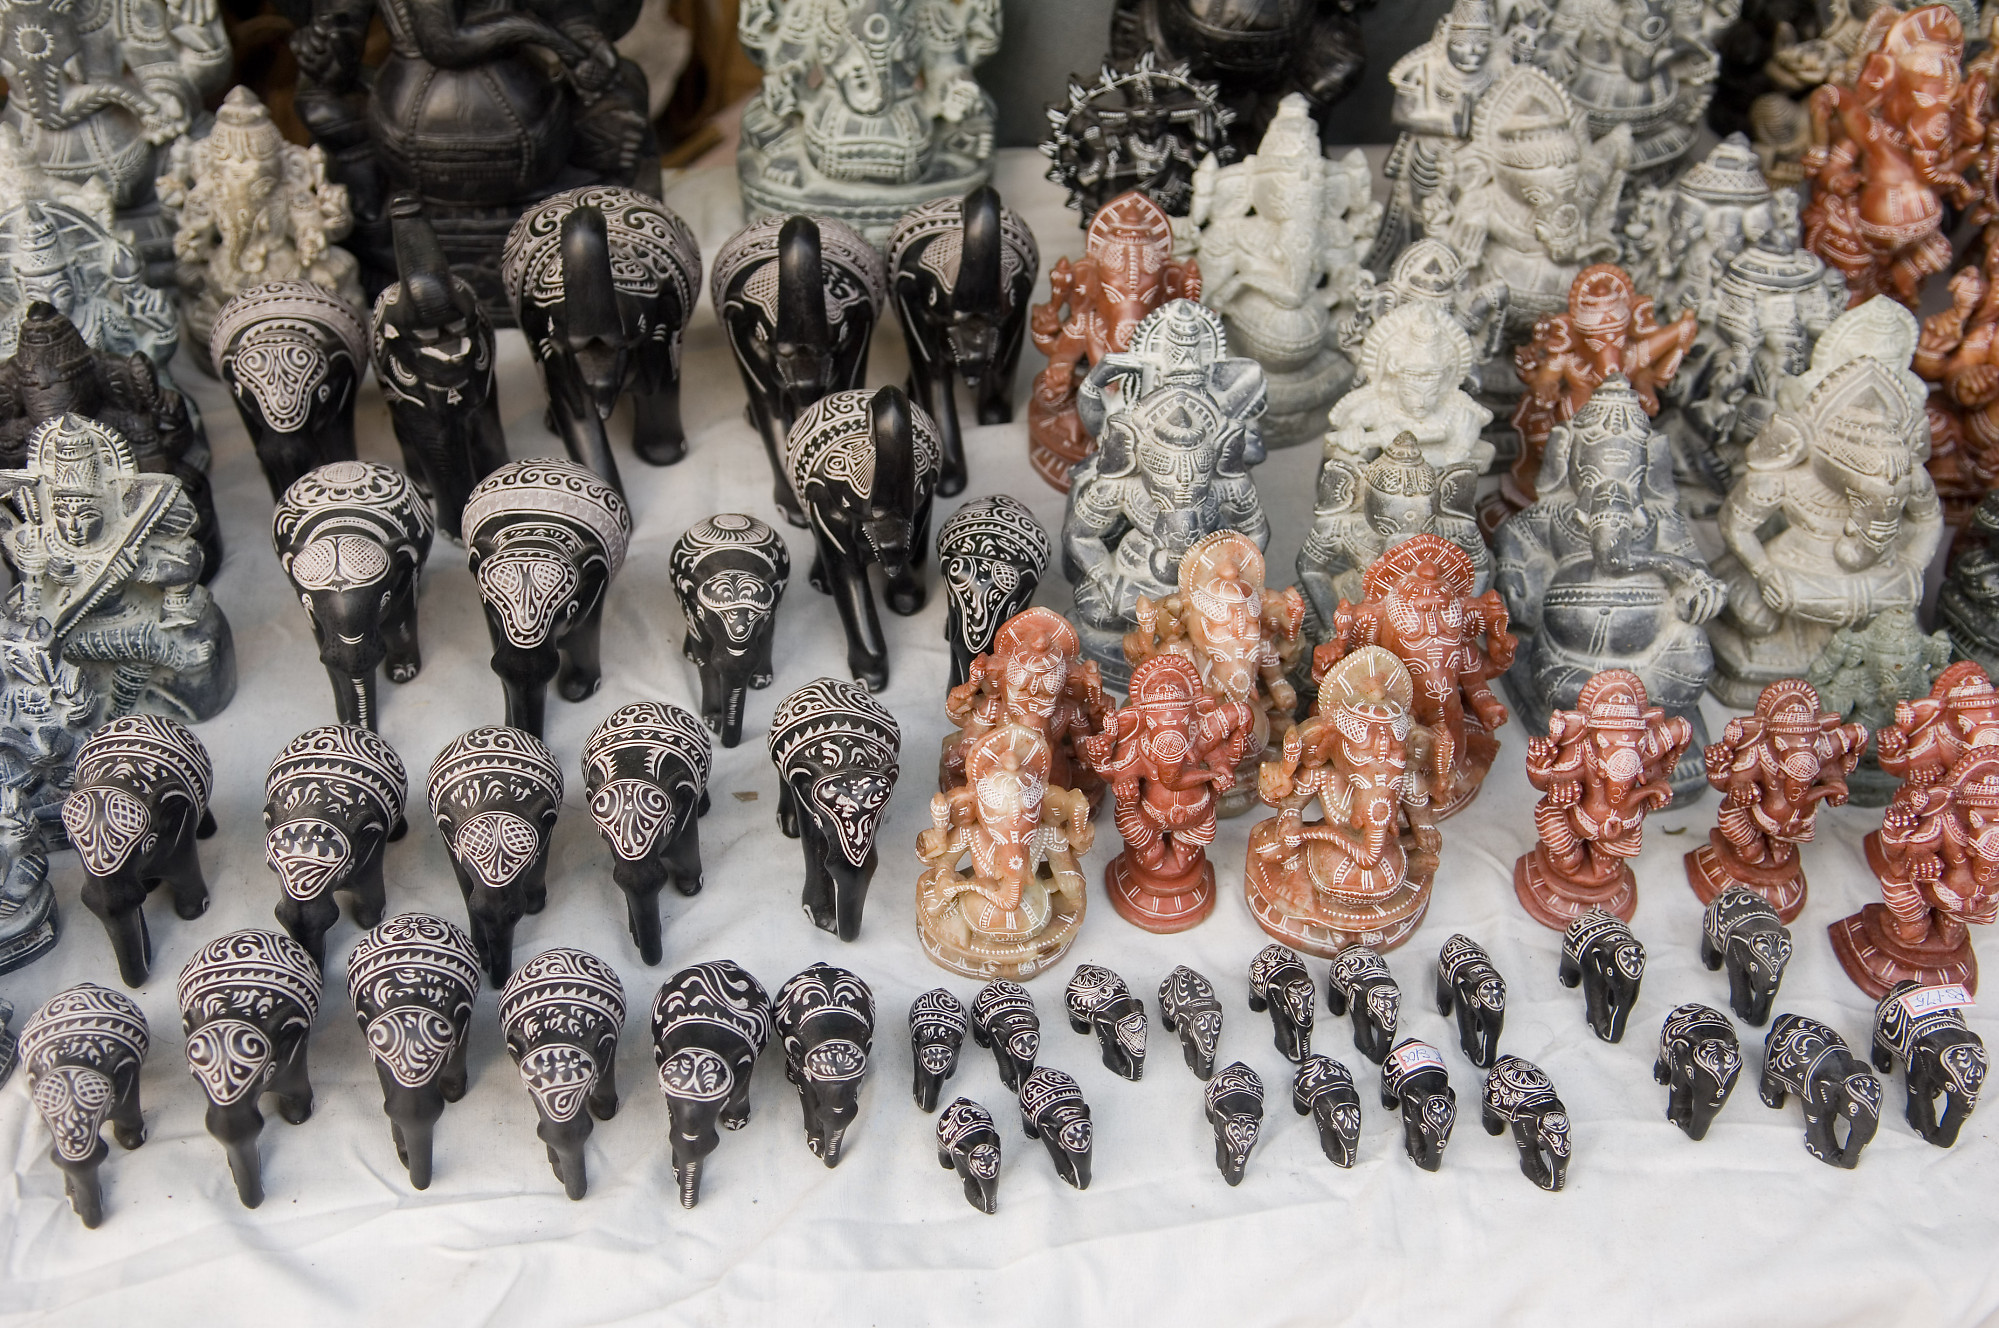 Small stone carvings